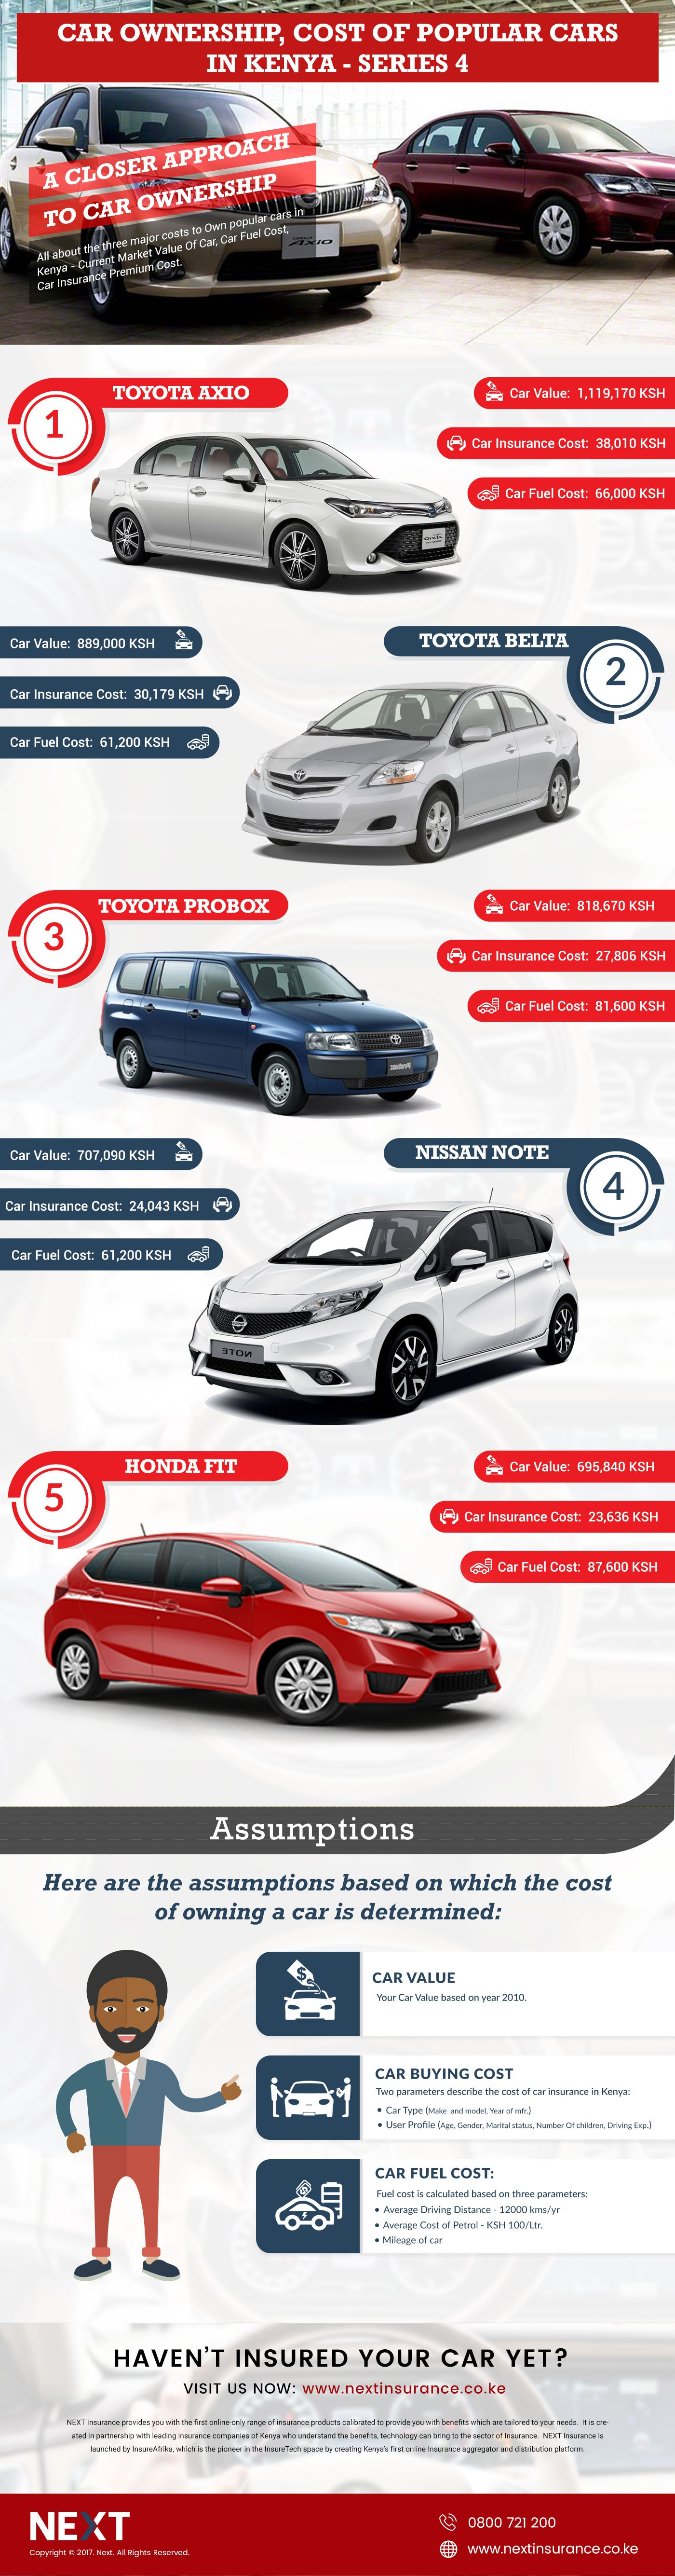 Car-ownership-infographic-Series-4